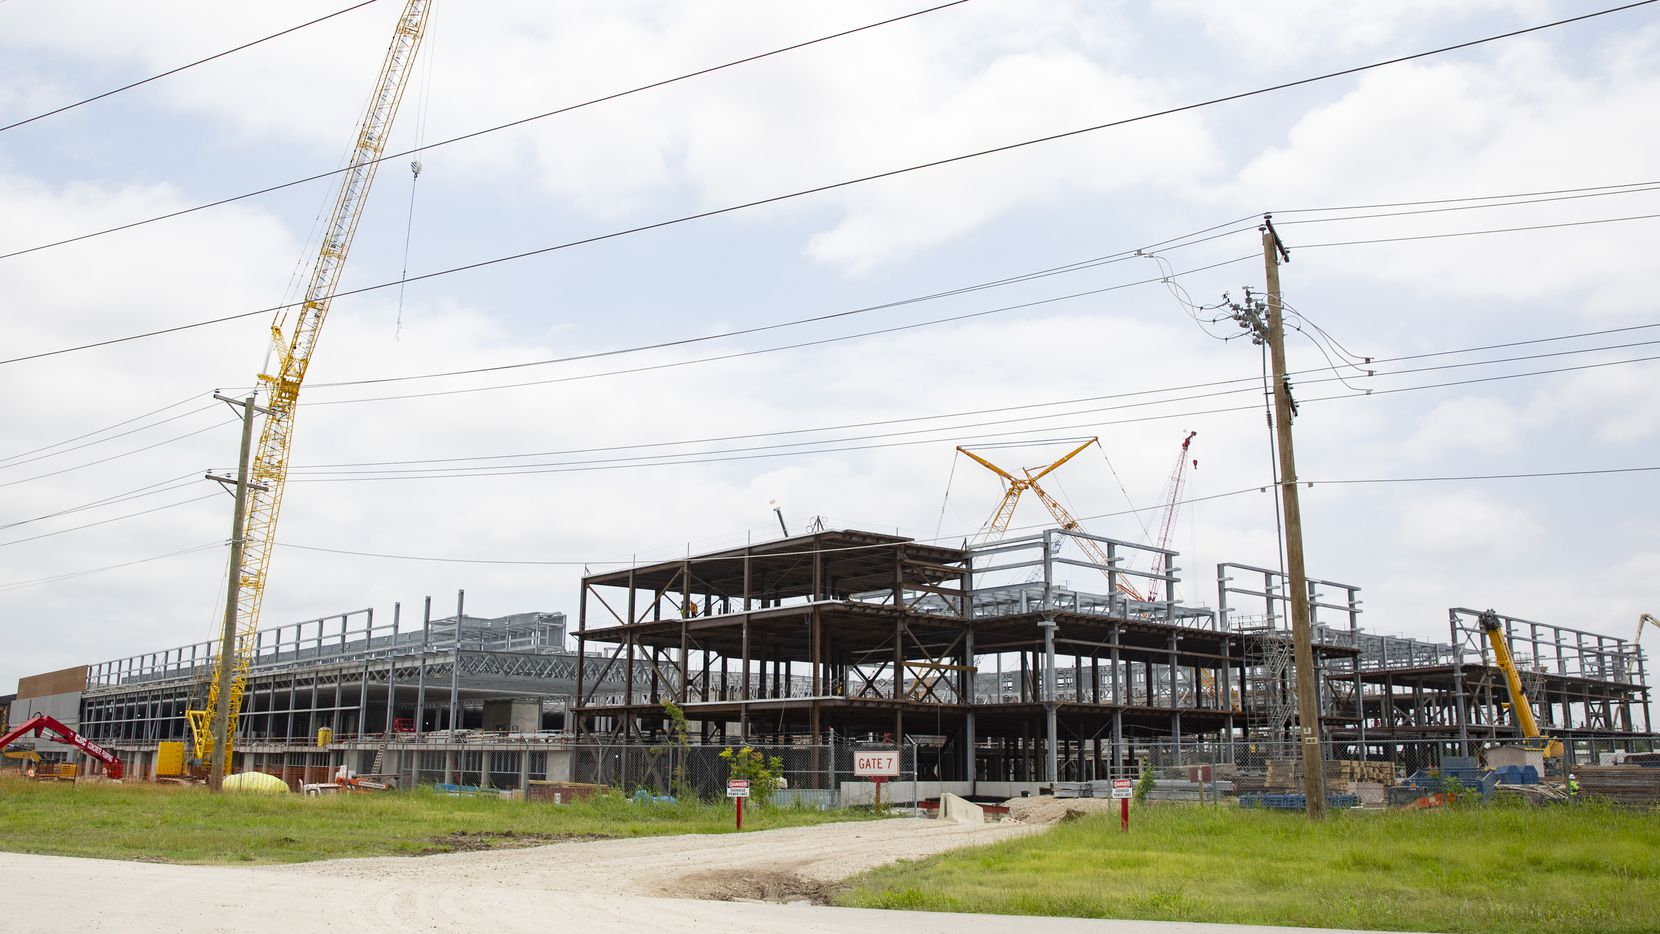 Construction of Texas Instruments' massive chip plant is underway in Richardson. Two years ago, the $3.6 billion project was granted a Chapter 313 tax break worth about $100 million, but the state program is scheduled to end in December 2022 — unless advocates can resurrect it in a different form.